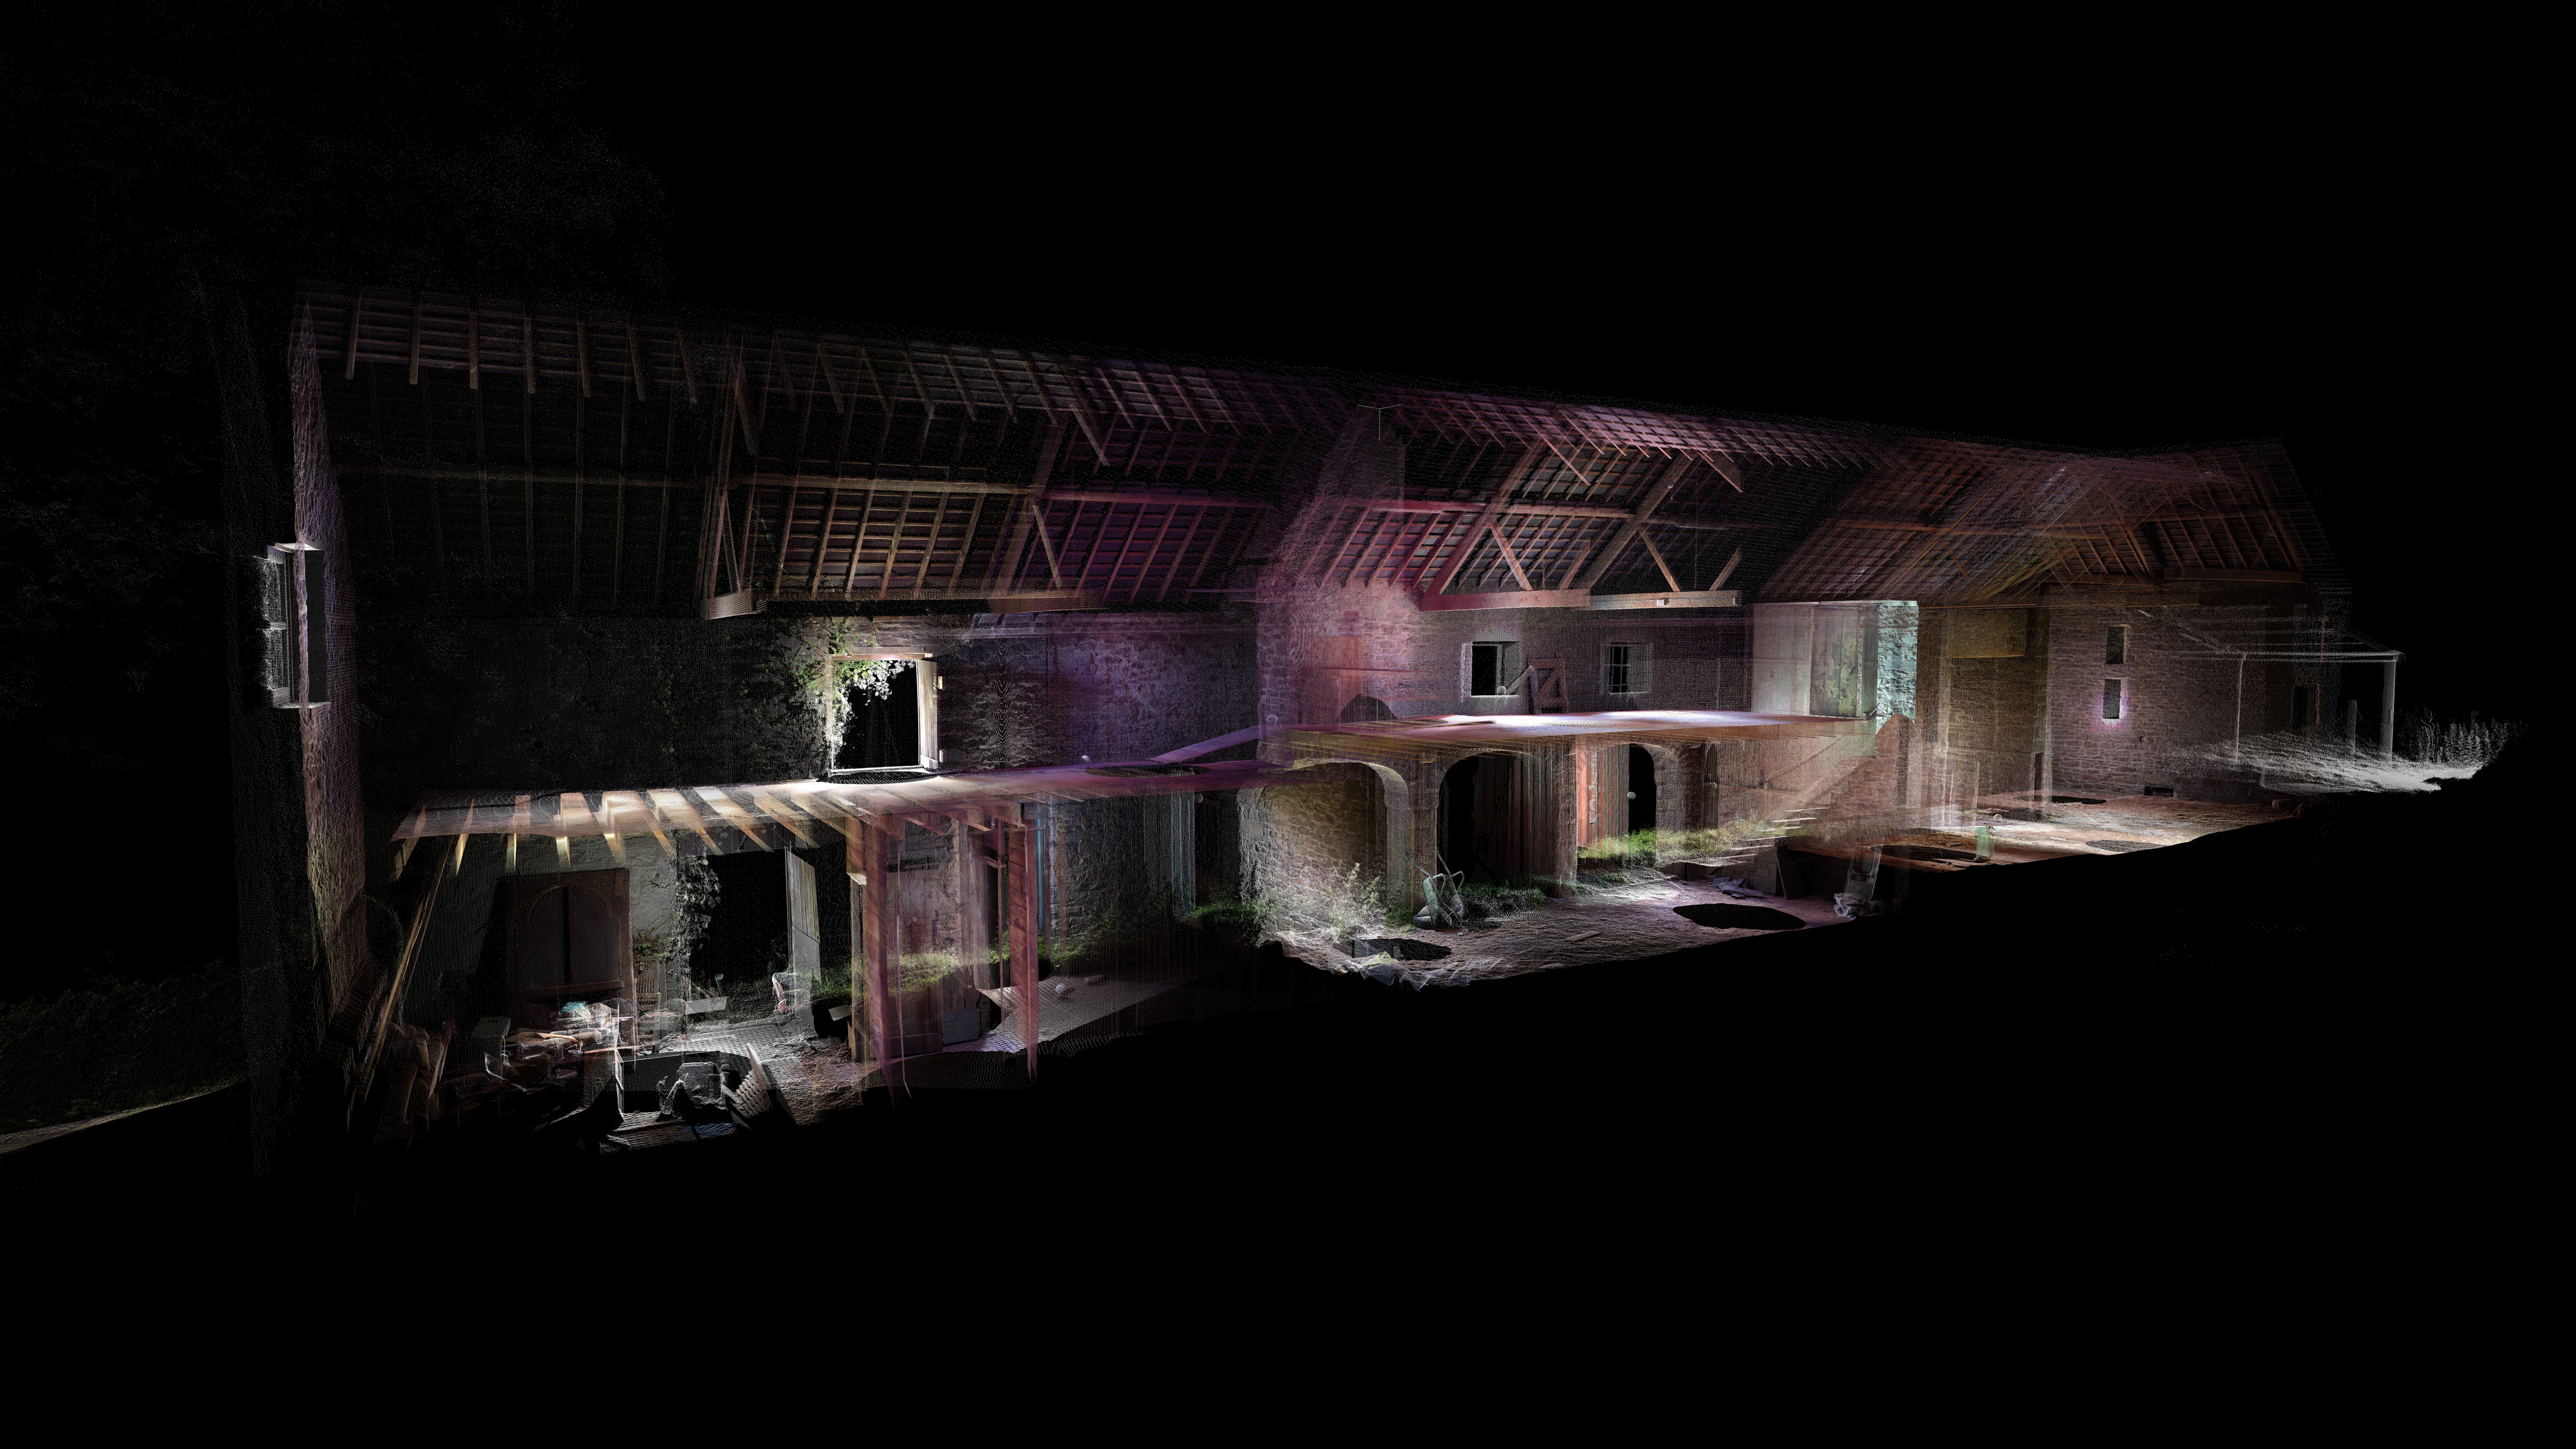 3D Survey View of the Interior